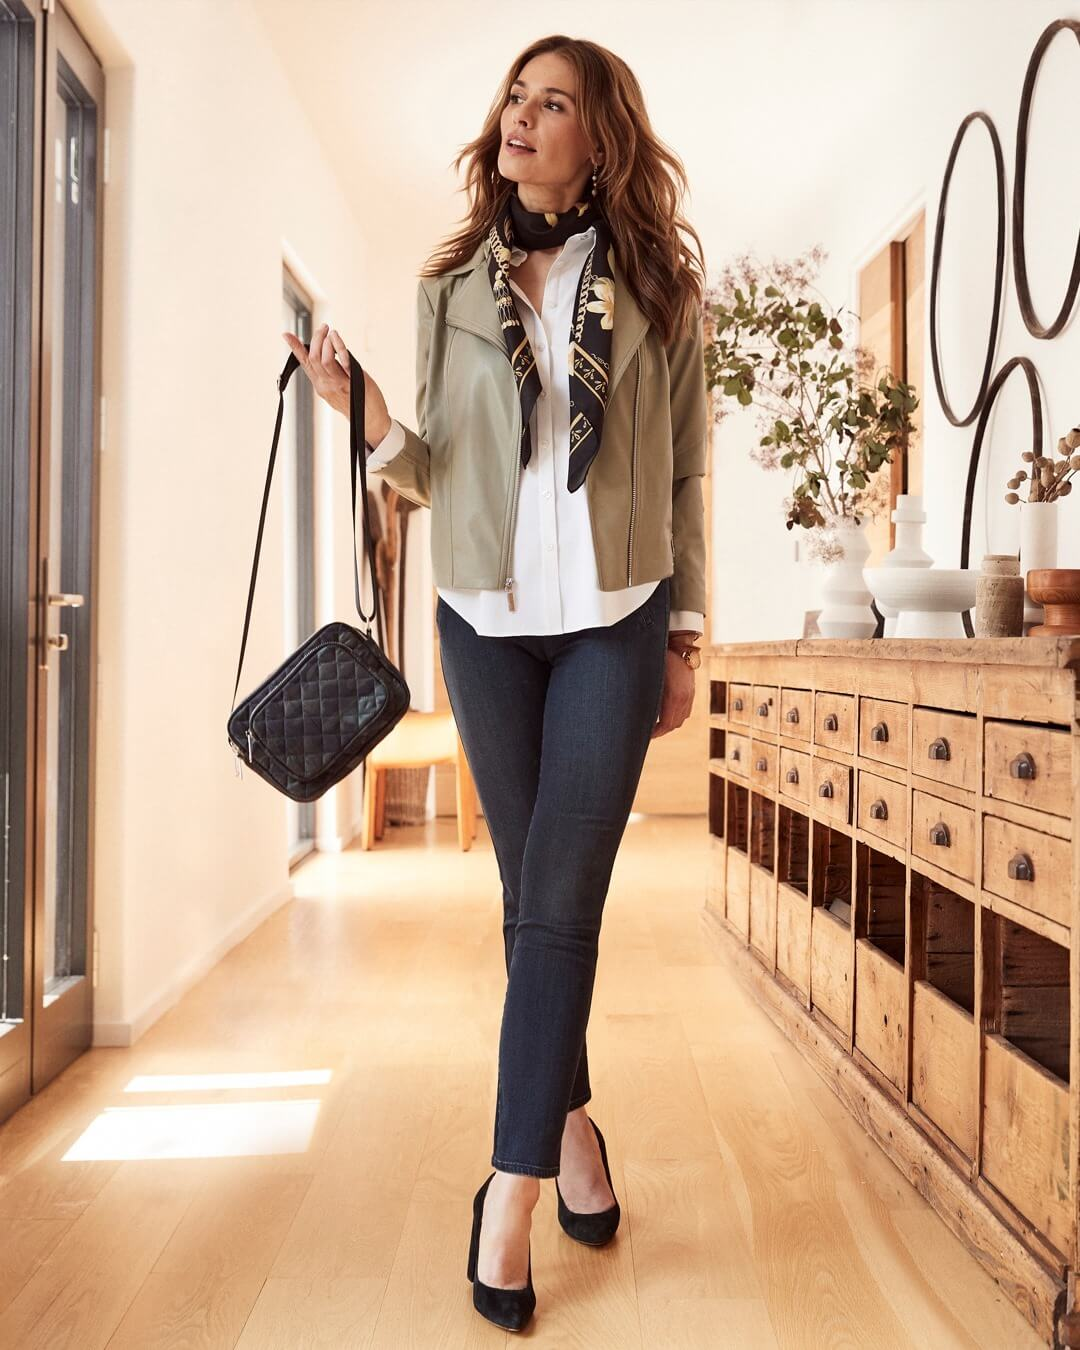 Fall outfit from Chicos at Uptown Gig Harbor